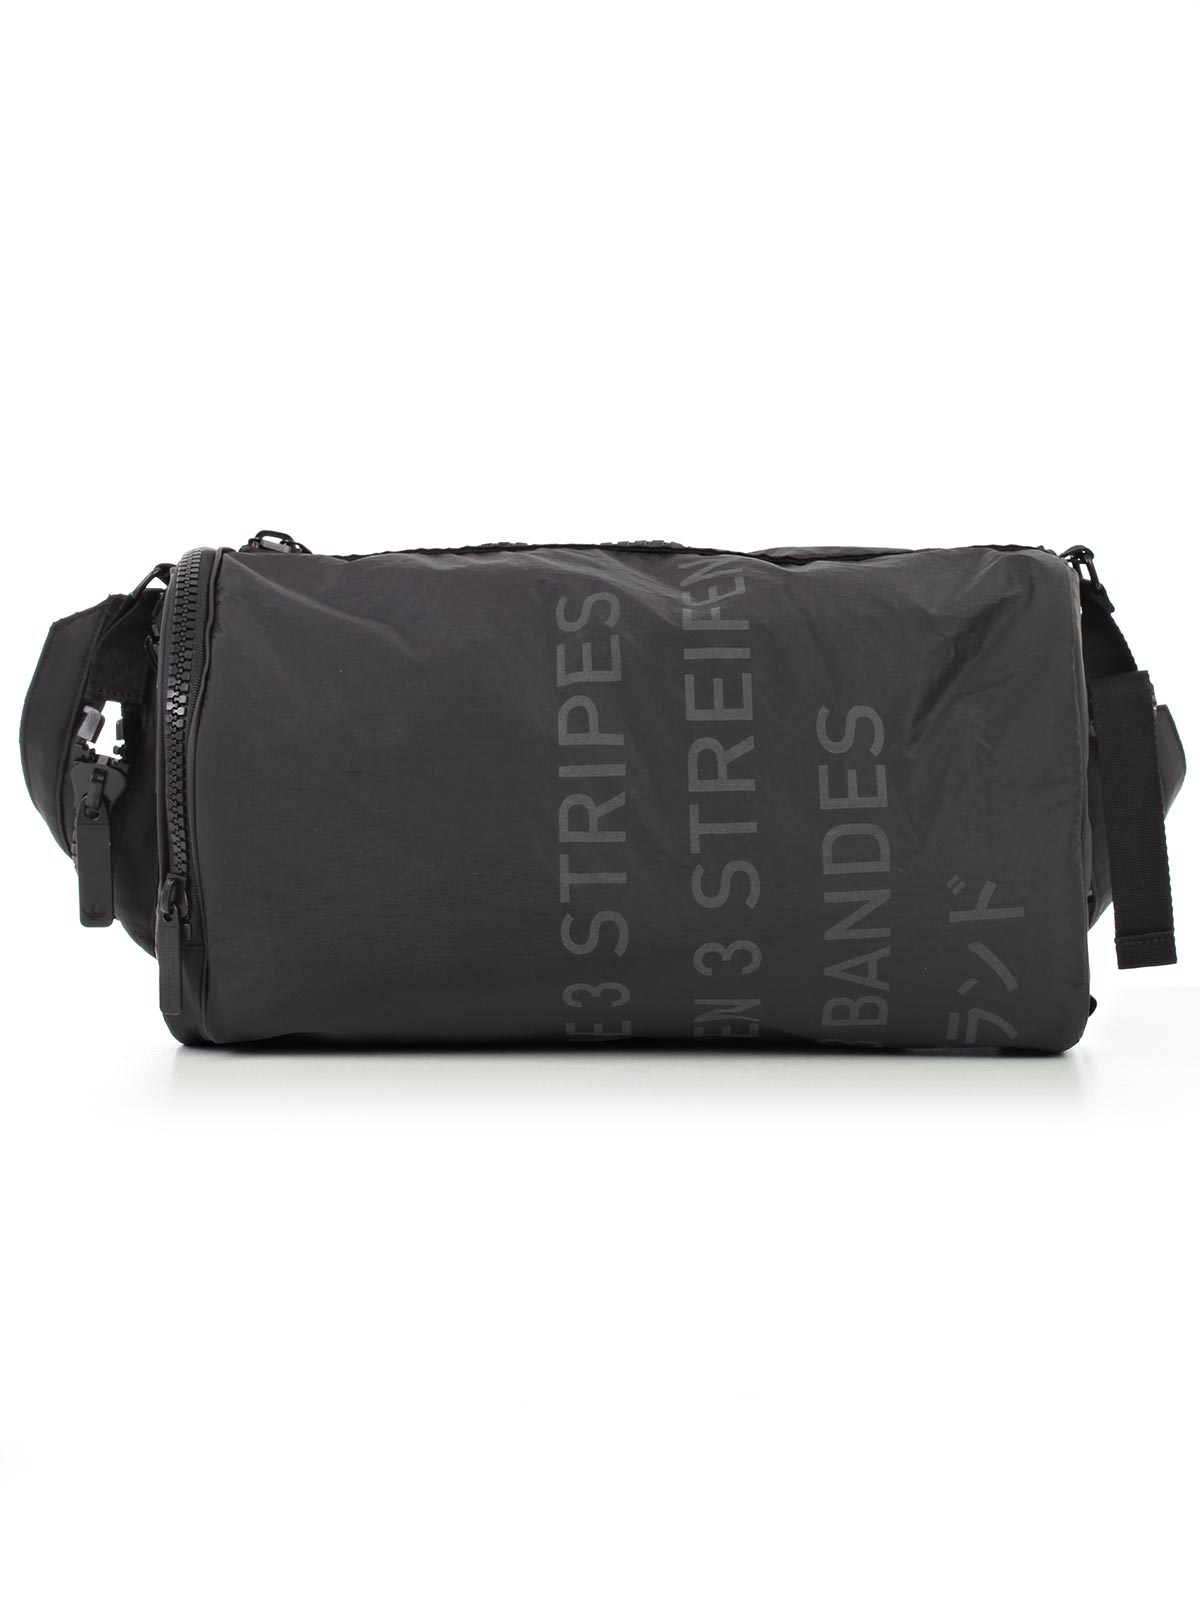 Picture of ADIDAS ORIGINALS Bags ZAINO